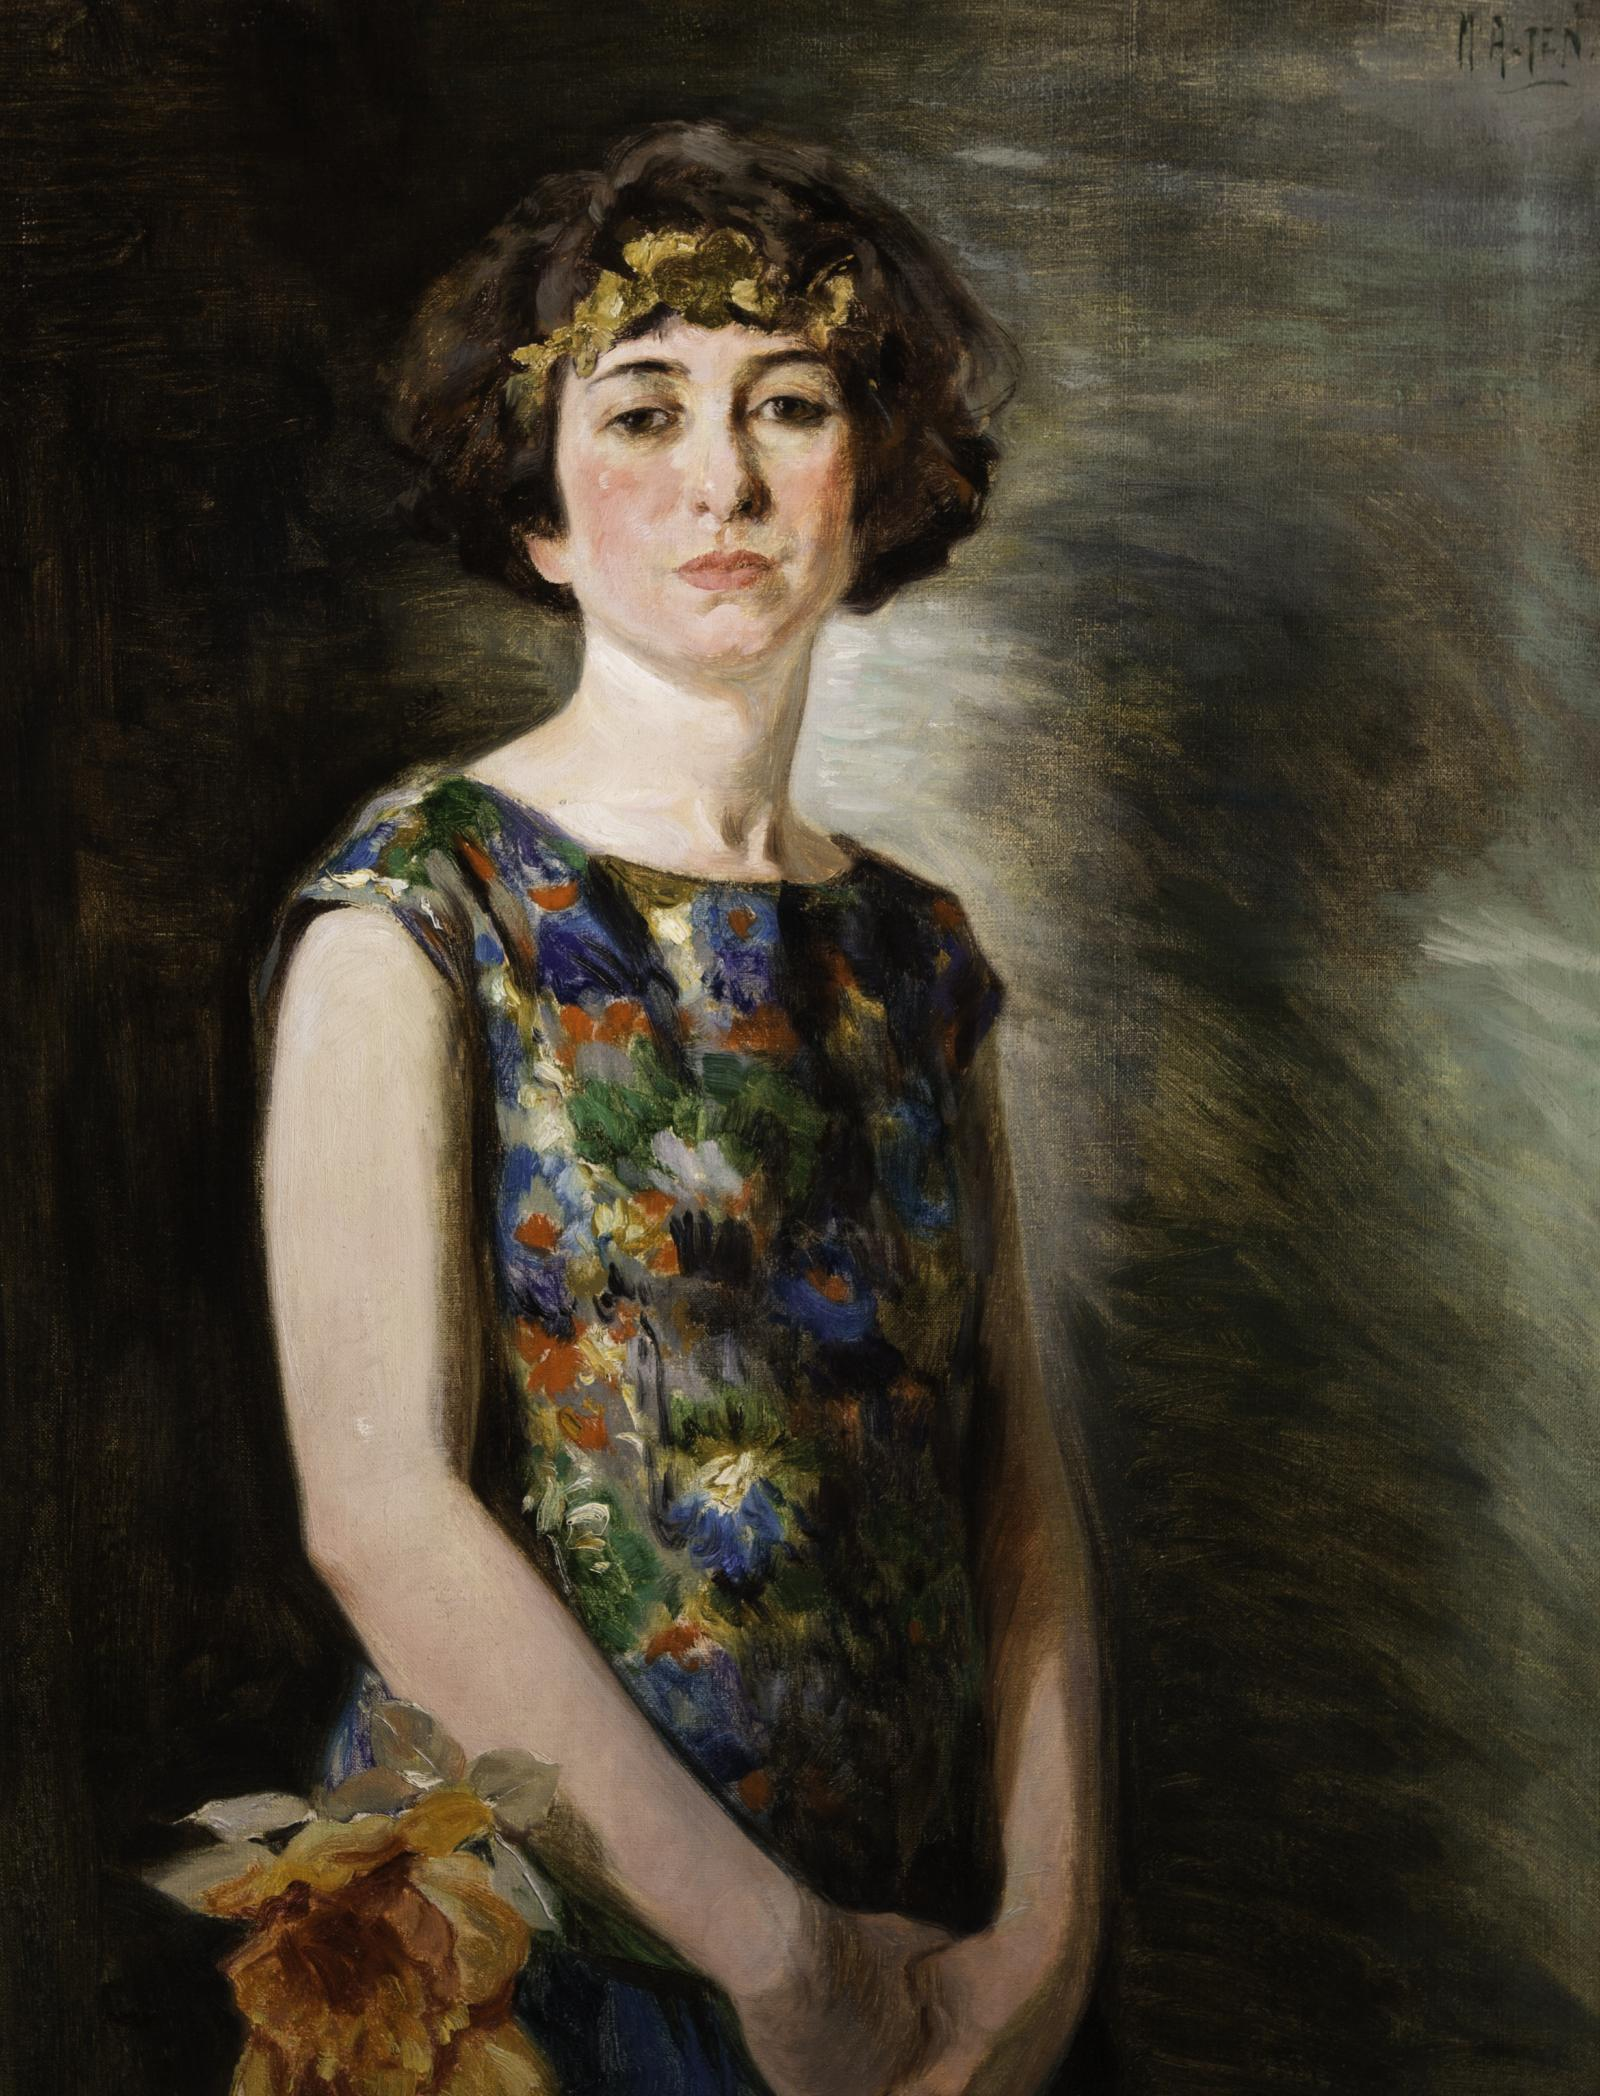 Woman with colorful dress; orange flower by her right hip.